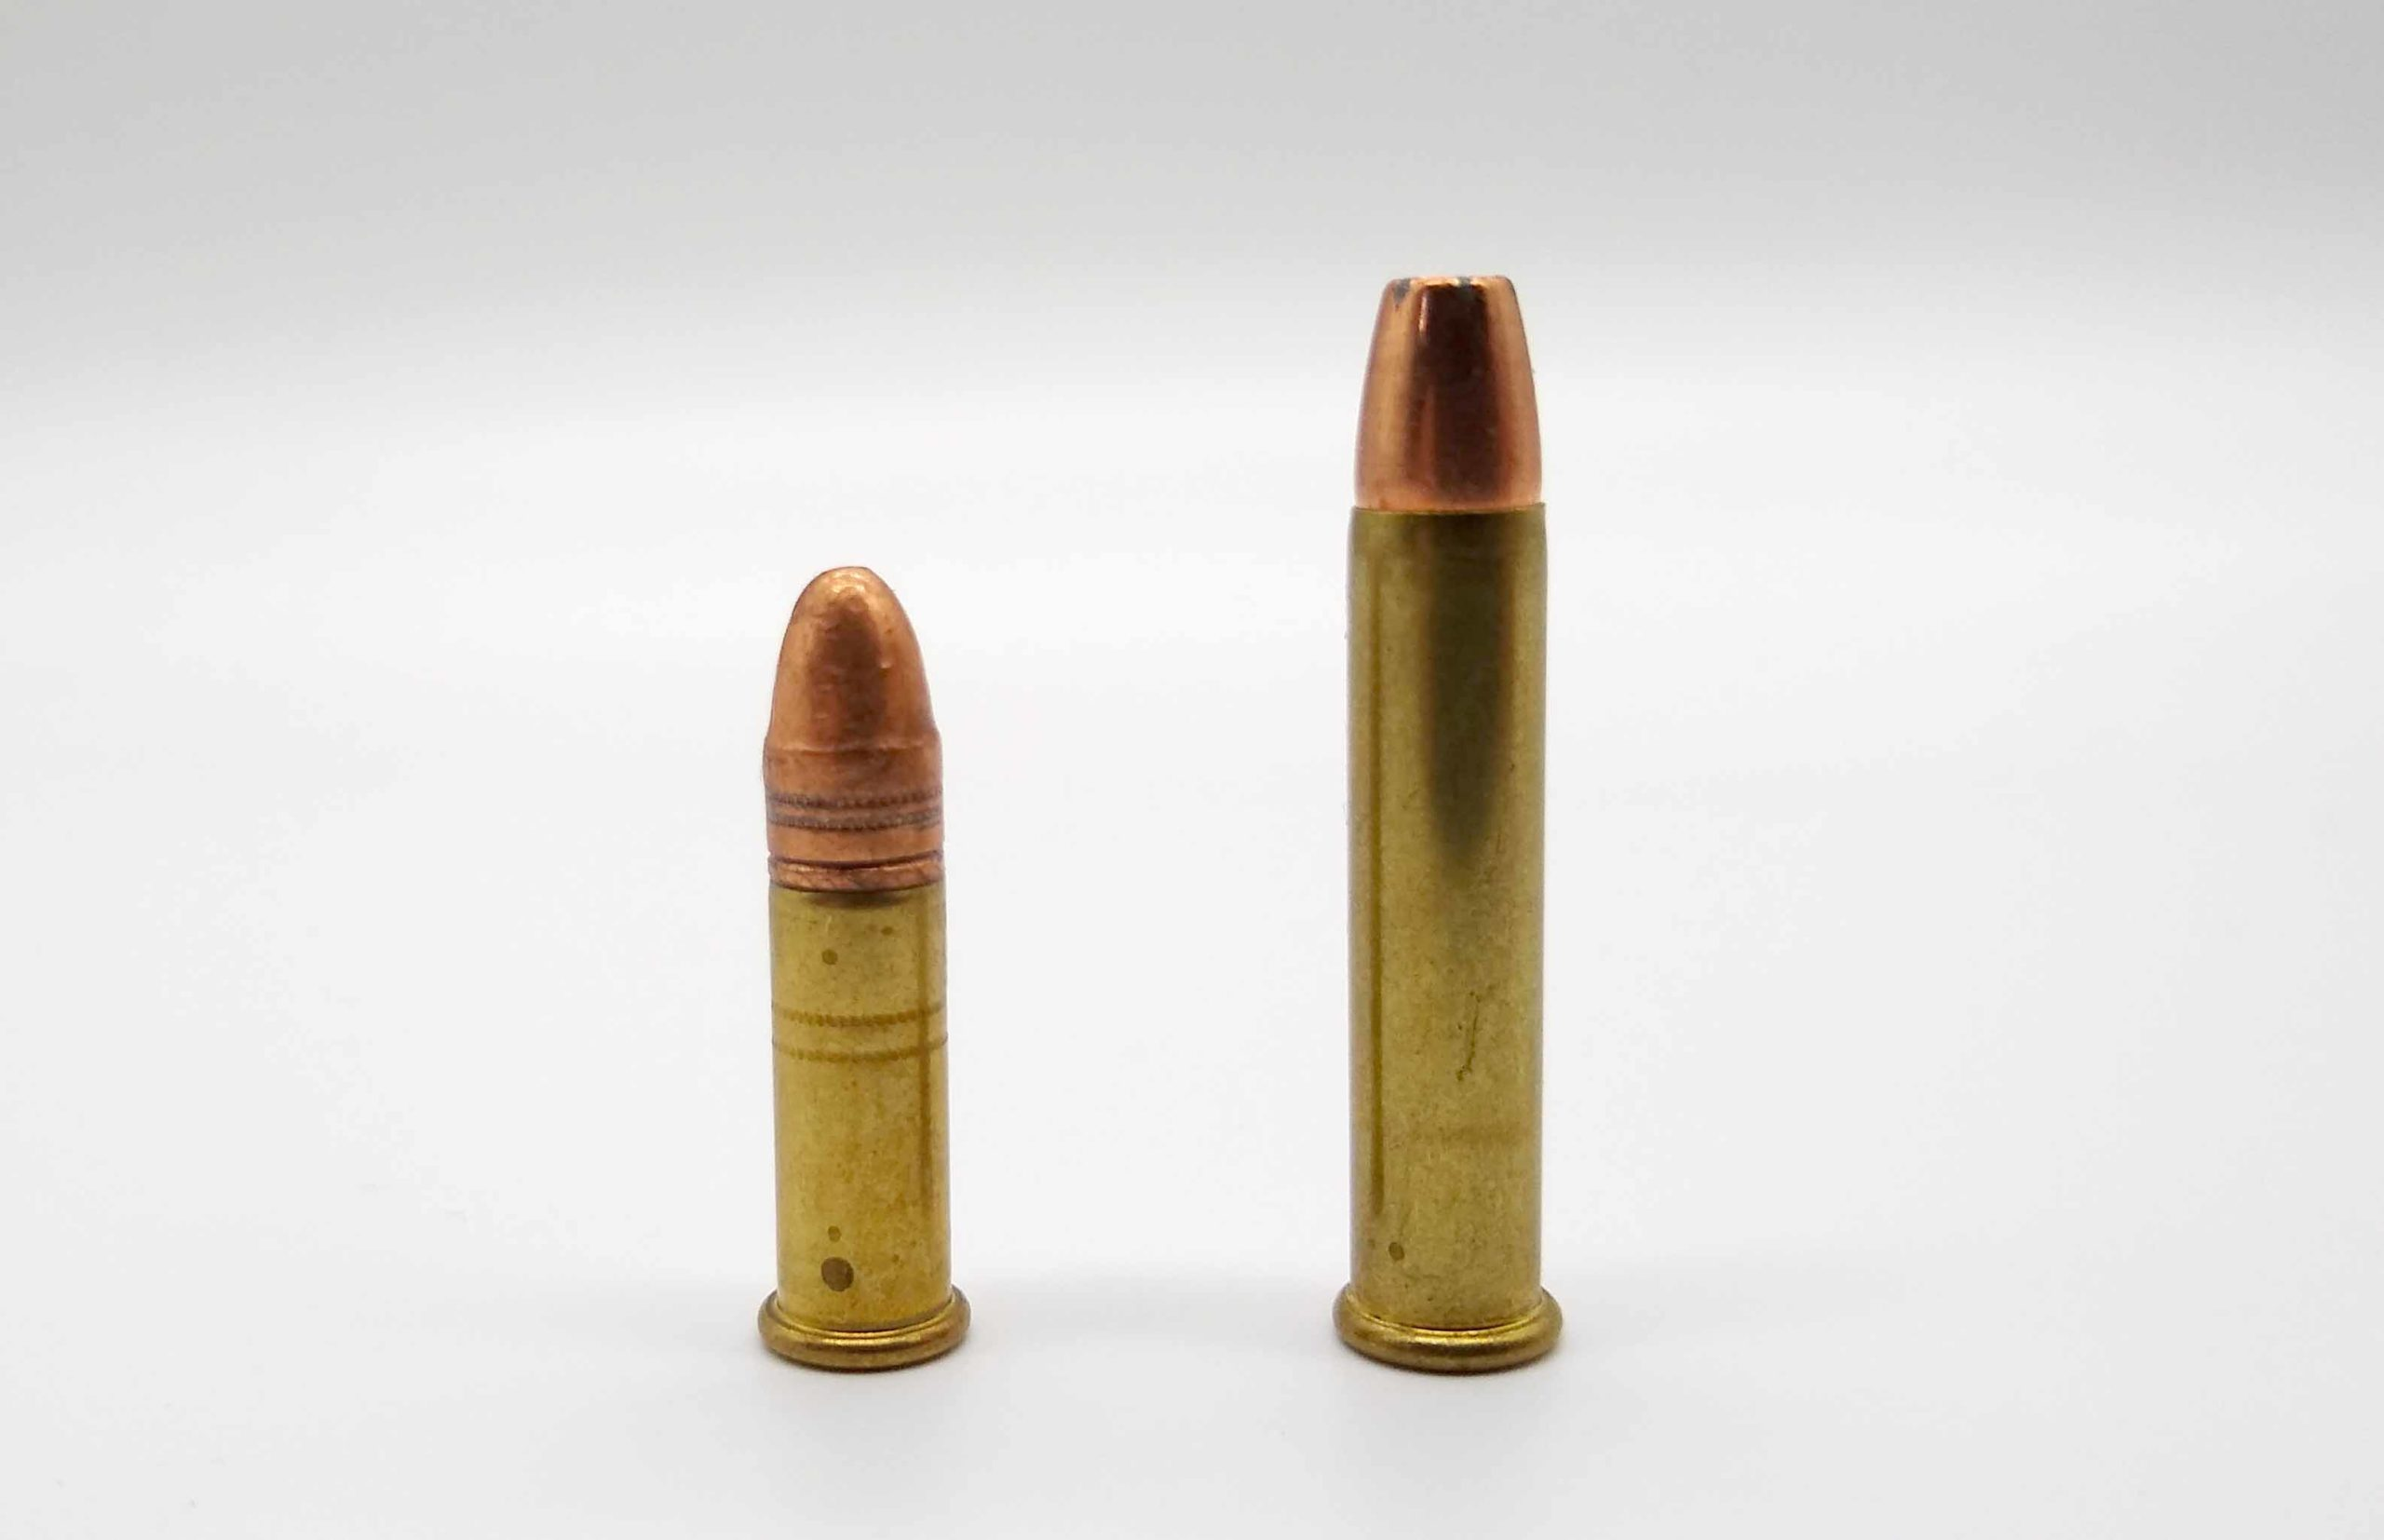 The .22 LR (left) is a jack-of-all-trades, while the .22 WMR is a specialist, for all intents and purposes.